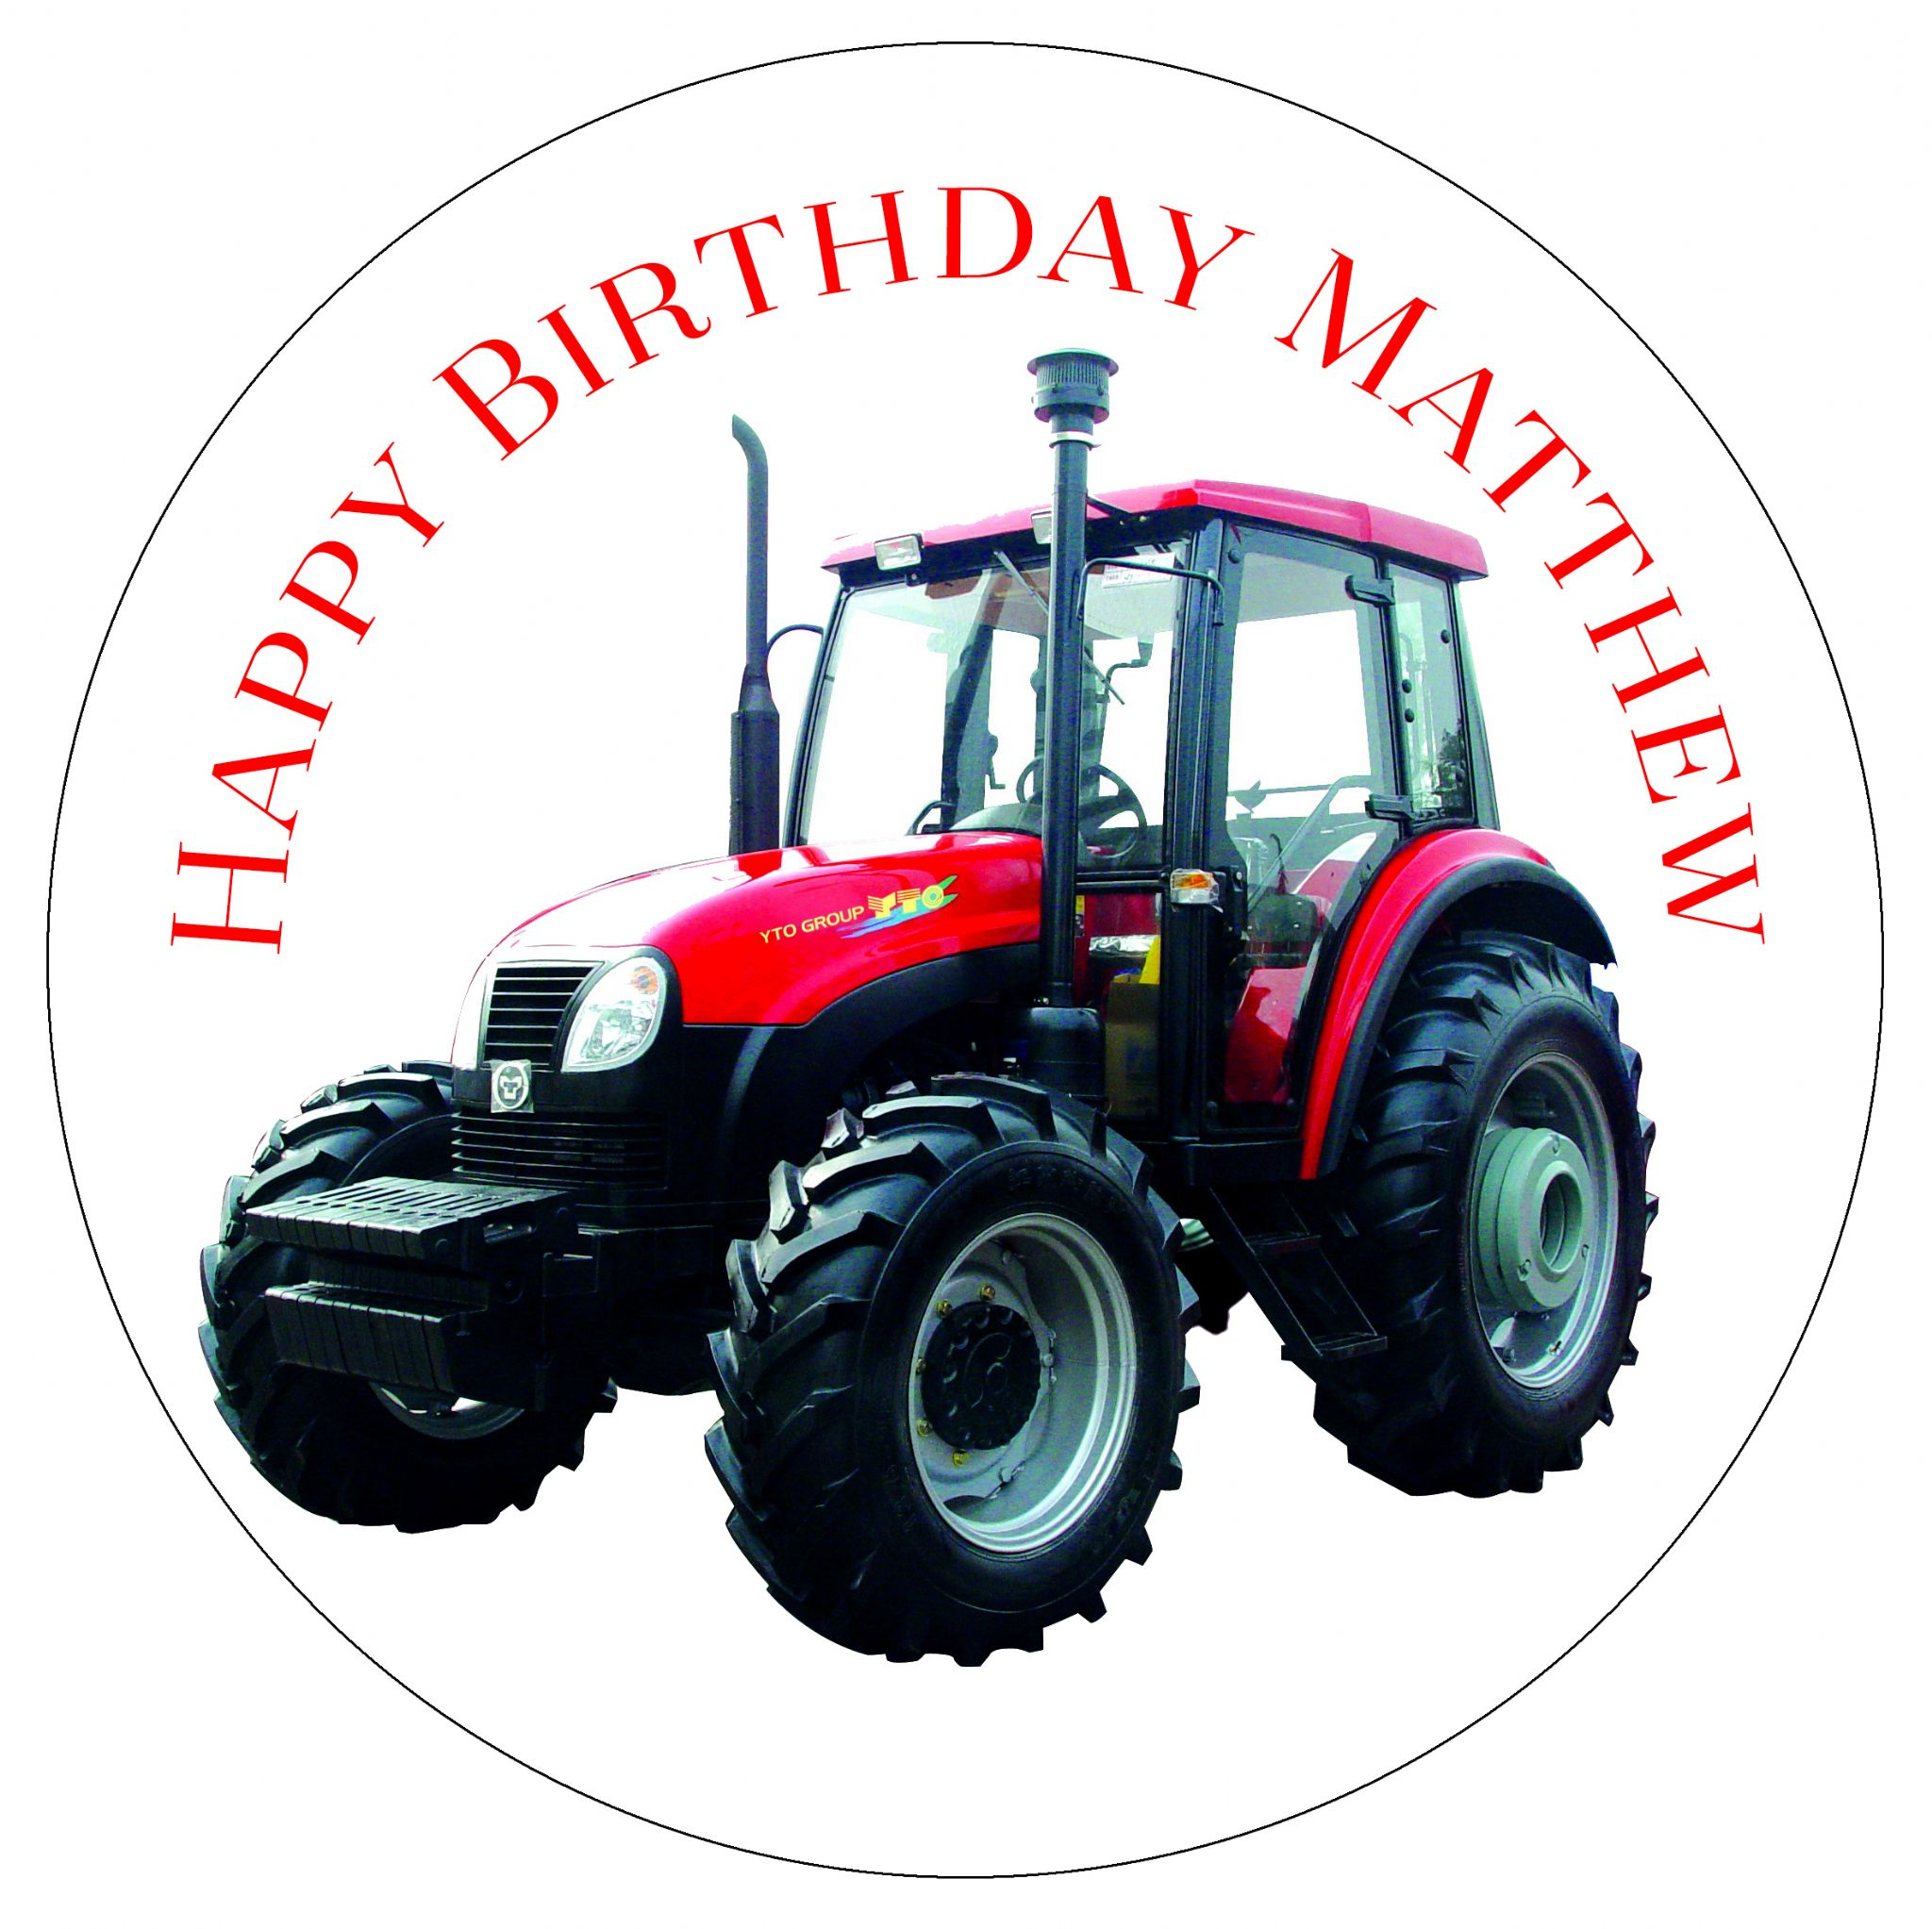 Red Tractor Edible Cake Topper